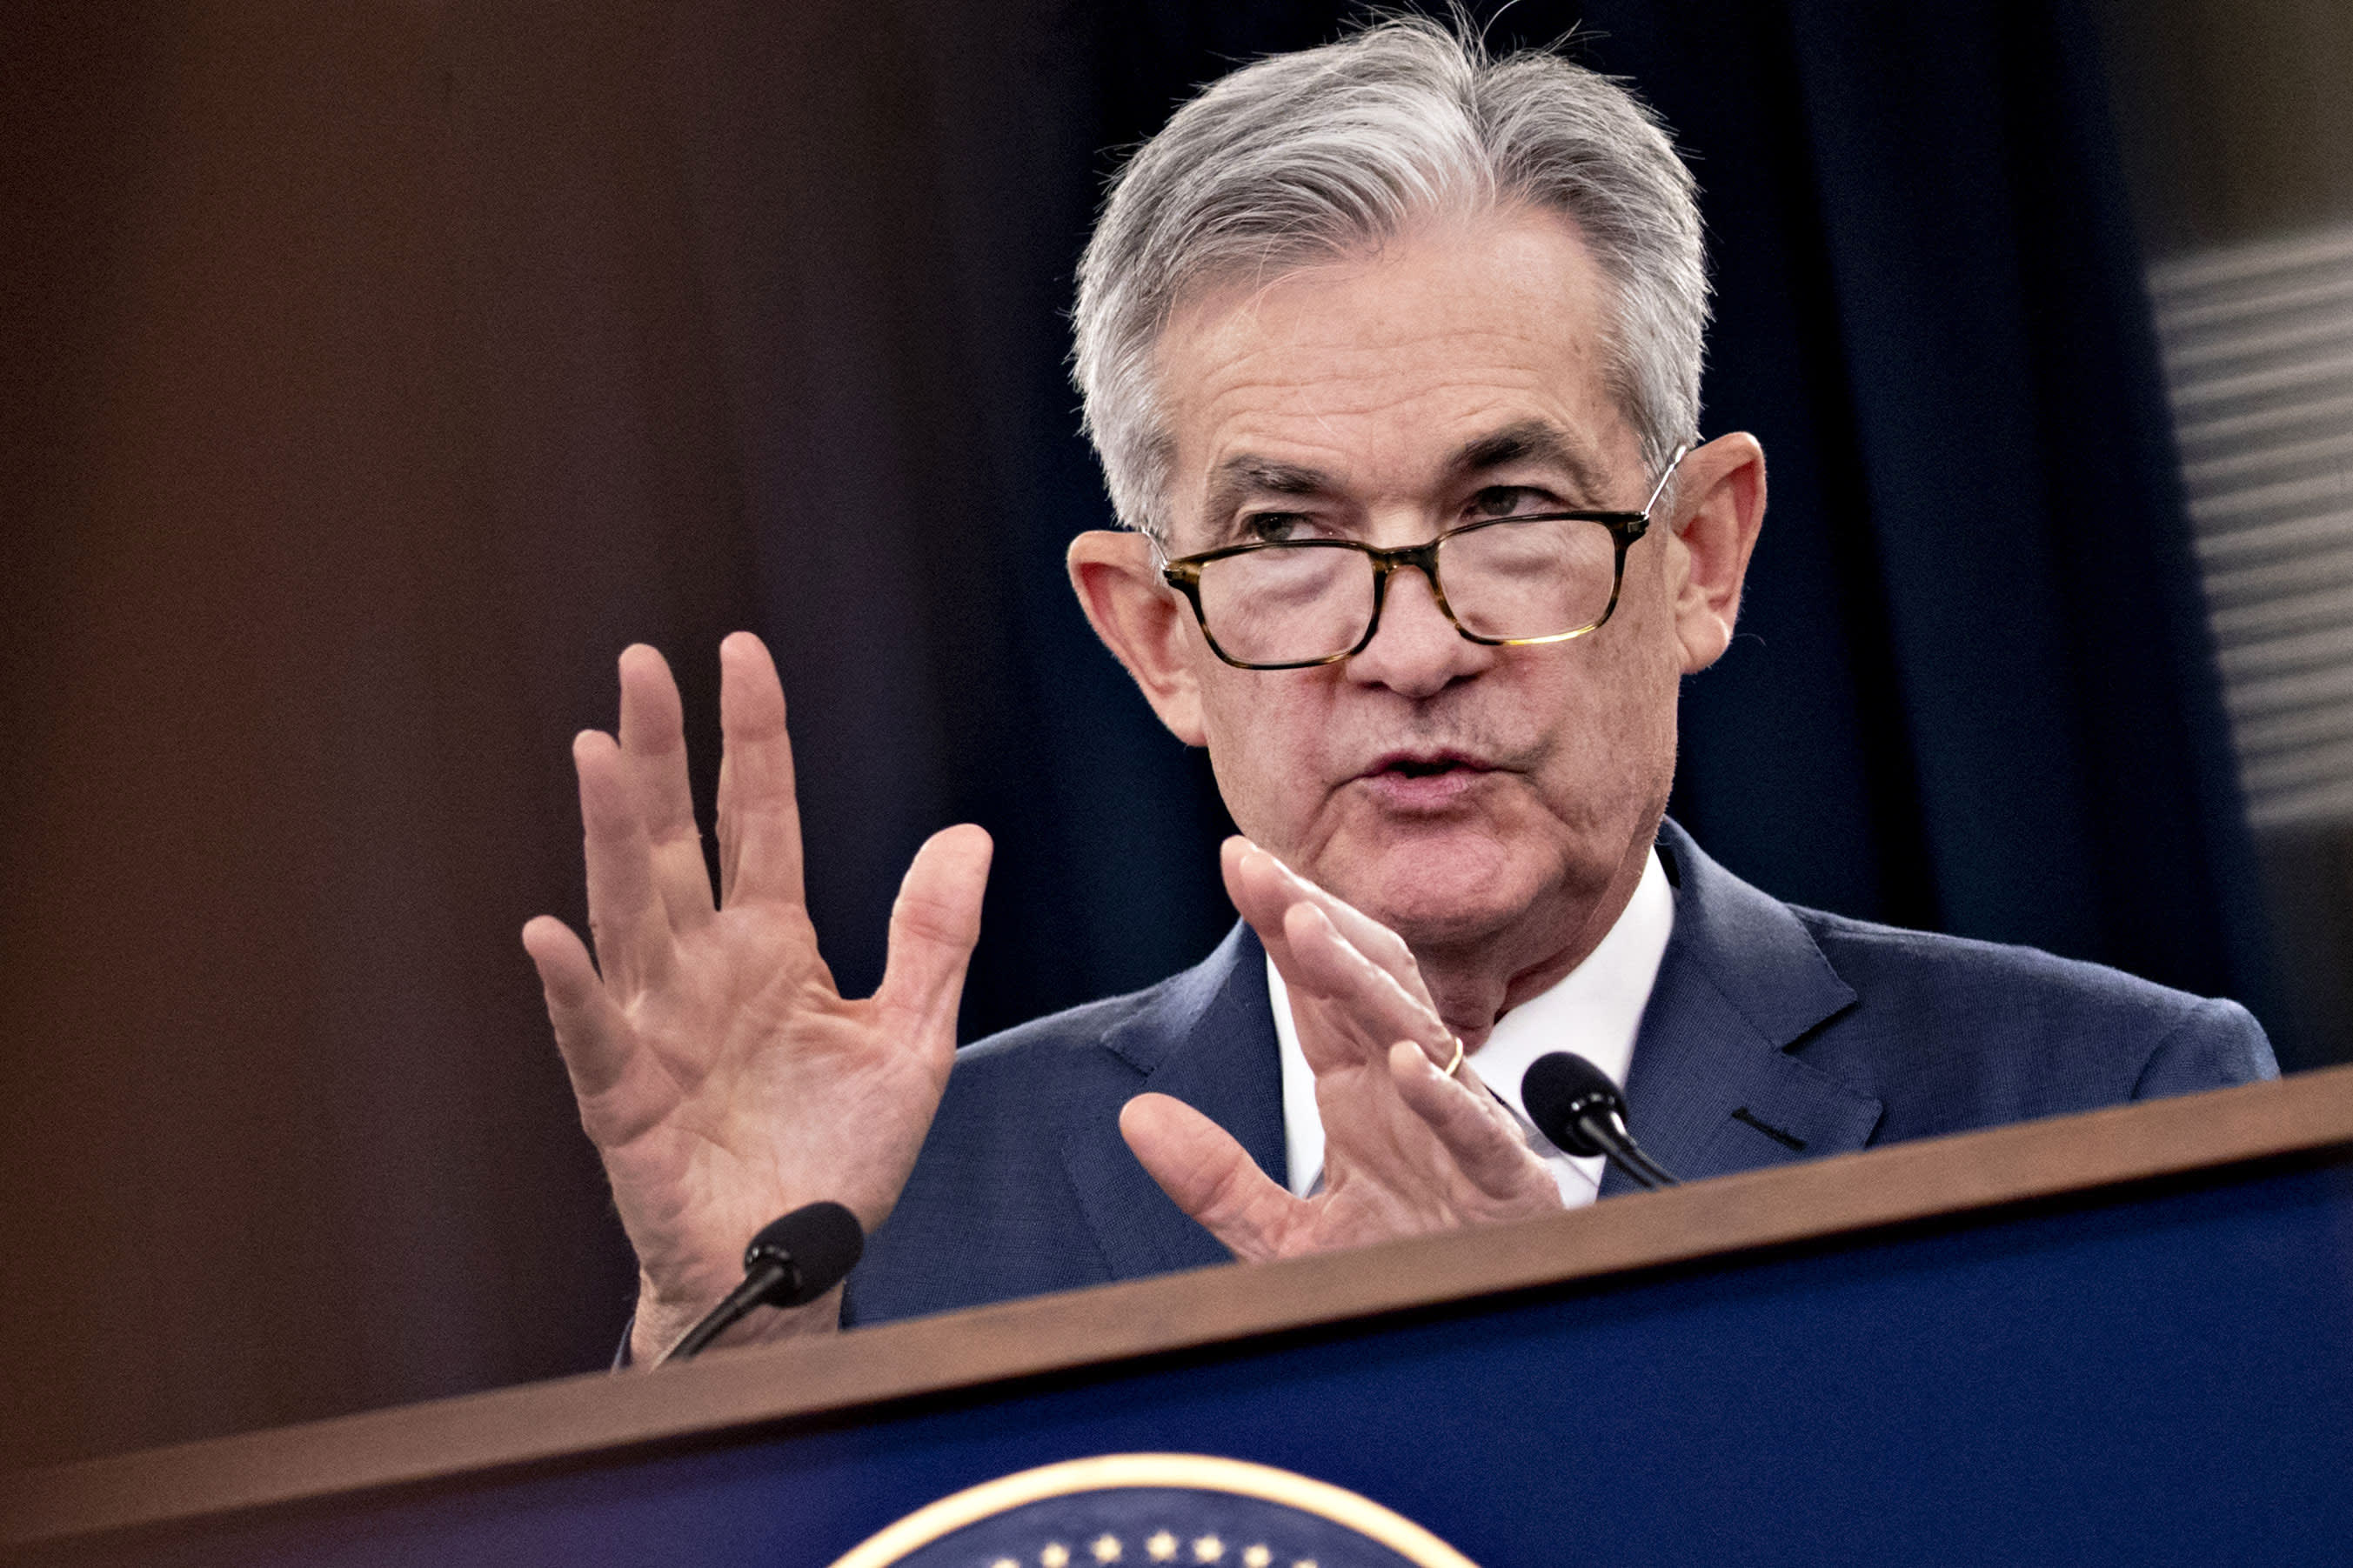 Similar 'adjustments' by the Federal Reserve in the 1990s led to boom times for stocks